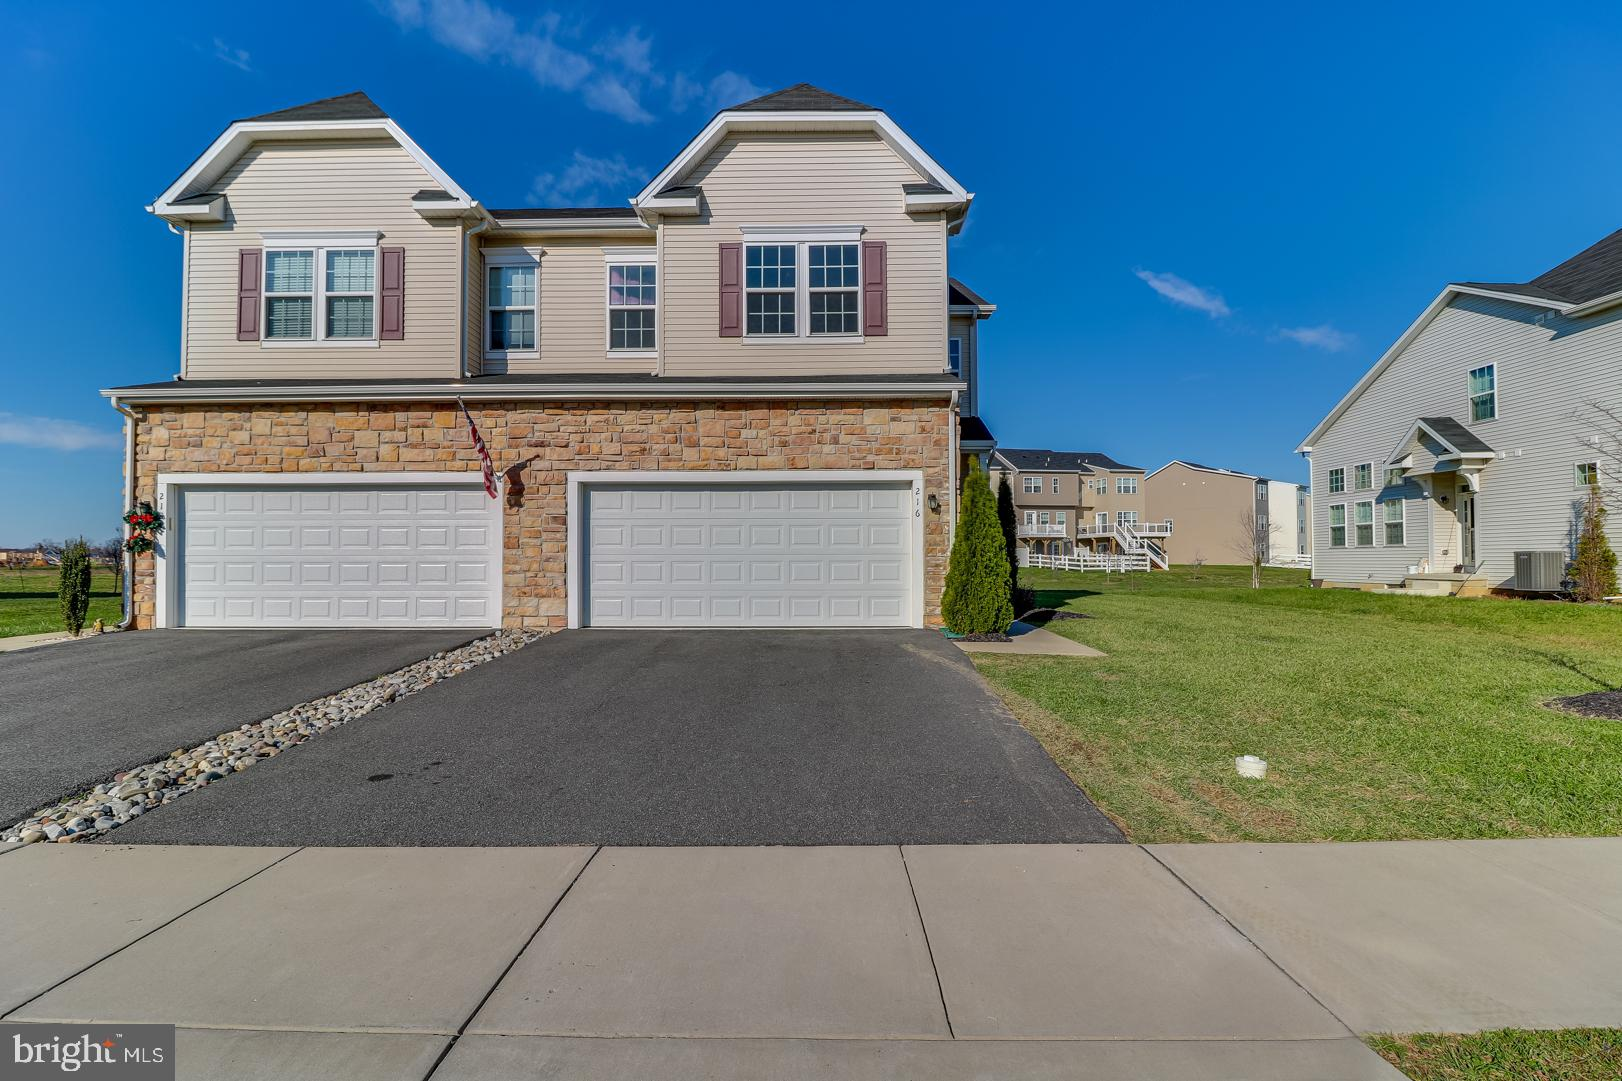 Visit this home virtually: http://www.vht.com/434123852/IDXS - This beautiful home is only available due to sellers having to relocate.  Located close to major highways and local comforts, just minutes from Rte. 1, 13, 301 and 95.  With 4 large Bedrooms and 2.5 Bathrooms, space will not be a problem! Walk into to a beautiful open concept kitchen and living room, great for entertaining. The kitchen has a large island with granite countertops and gorgeous backsplash on the walls, stainless steel appliances, and hardwood floors throughout the main level. Second floor laundry-no more lugging baskets up the stairs, a huge master bedroom that has an ensuite with a garden tub, separate walk-in shower, and double vanity, 3 additional large bedrooms. Call this place home just in time for the New Year! ***Seller will give credit for carpet